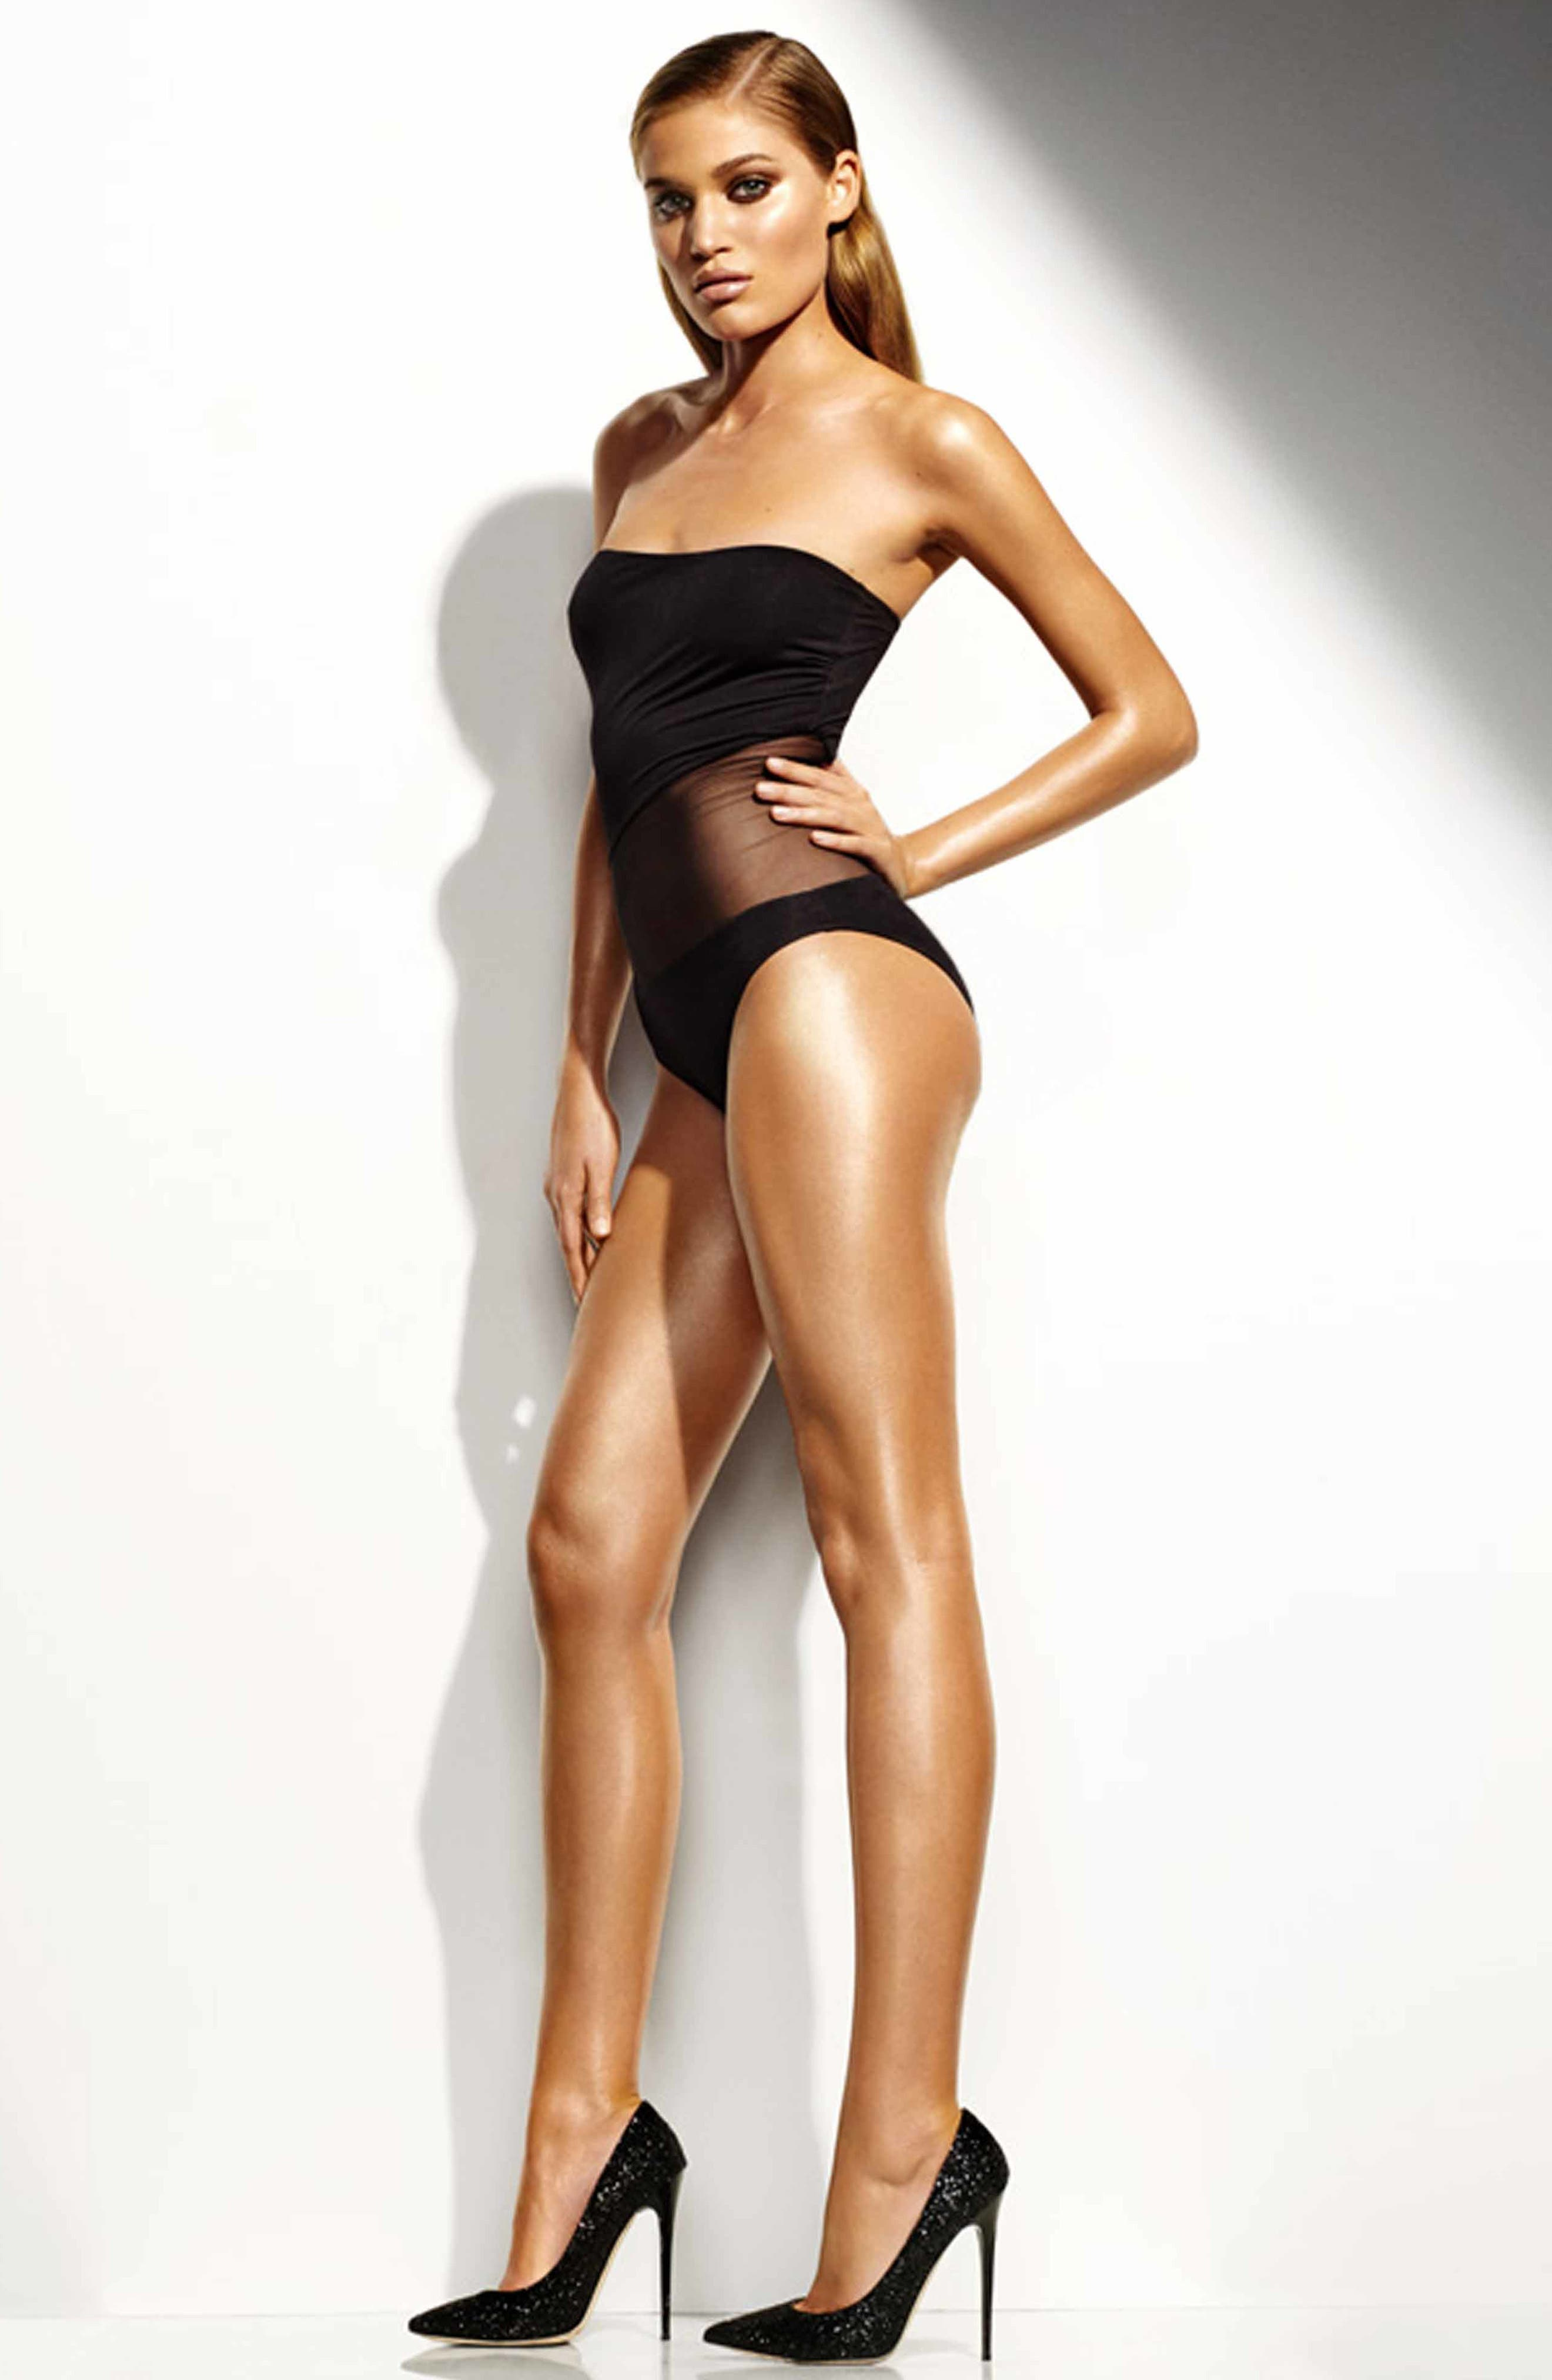 Supermodel Body Slimmer Shimmer Shape, Hydrate & Glow,                             Alternate thumbnail 4, color,                             NO COLOR